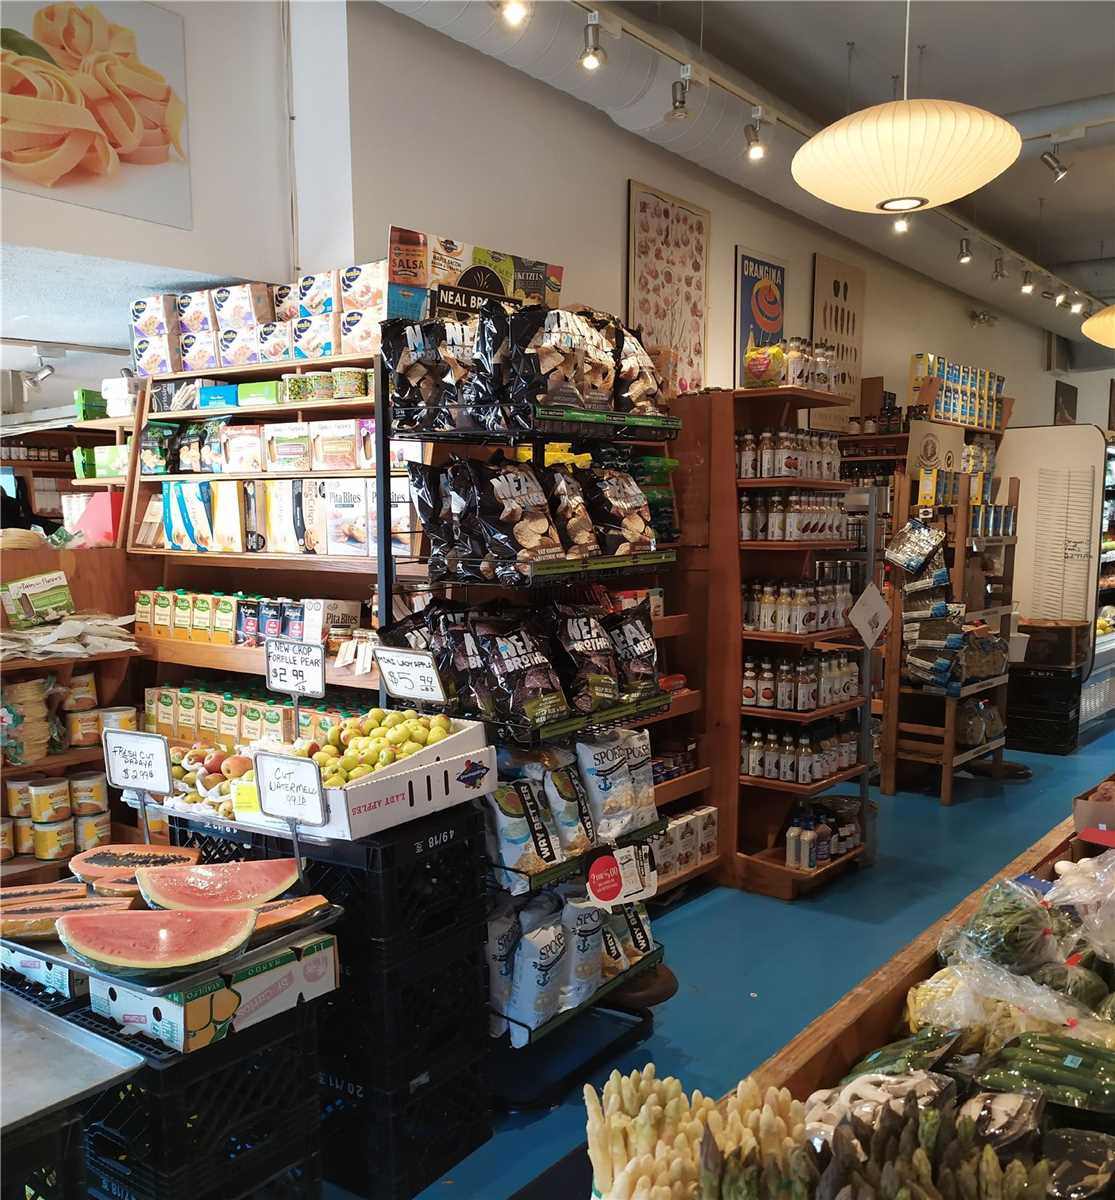 2294 Bloor St W, Toronto M6S1N9 Commercial Property On